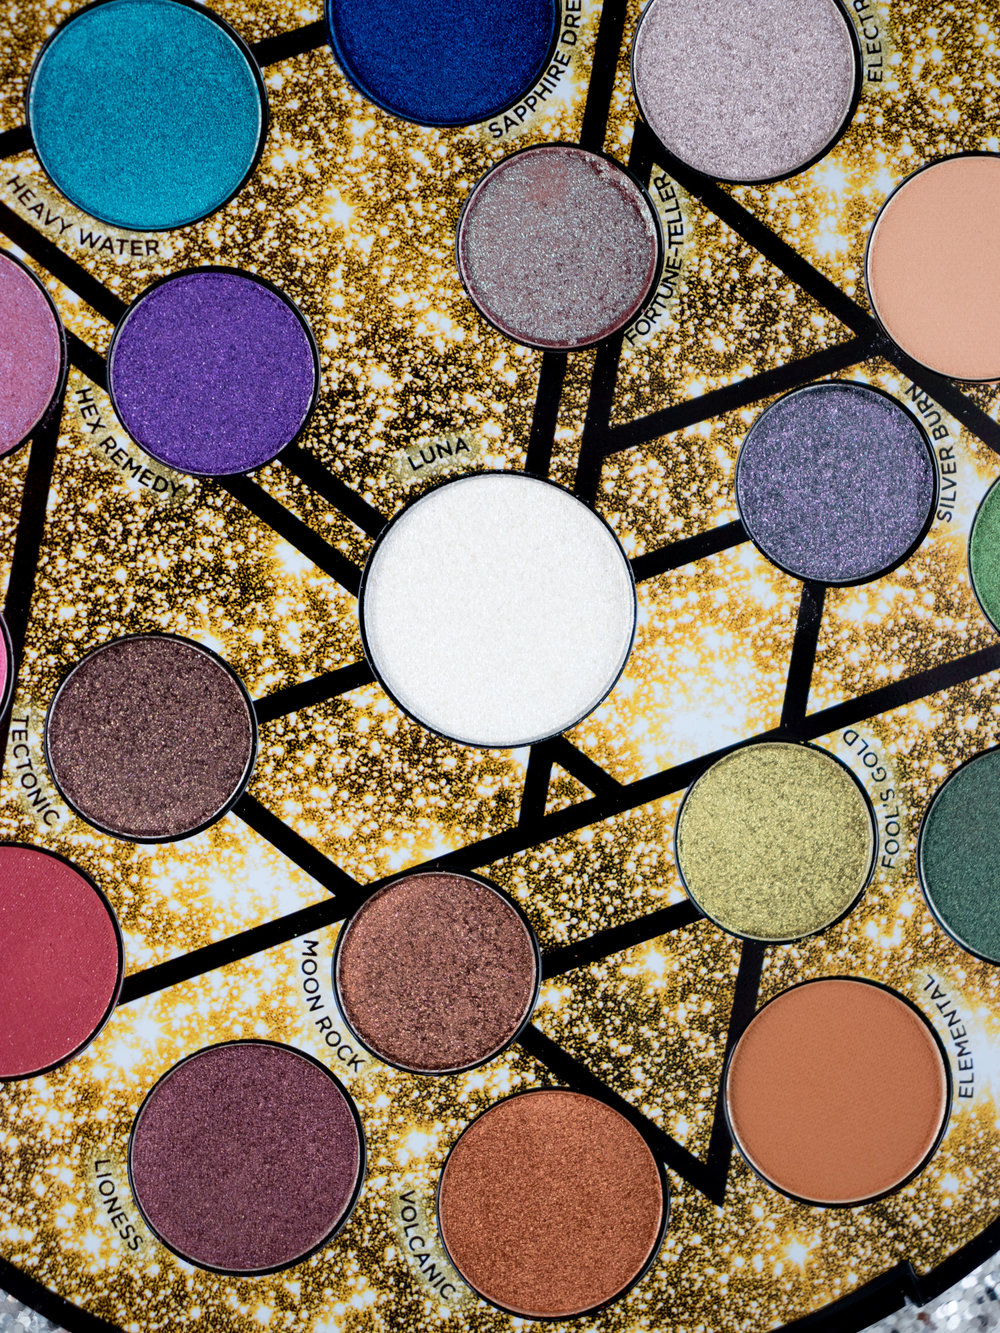 Urban Decay Elements Eyeshadow Palette